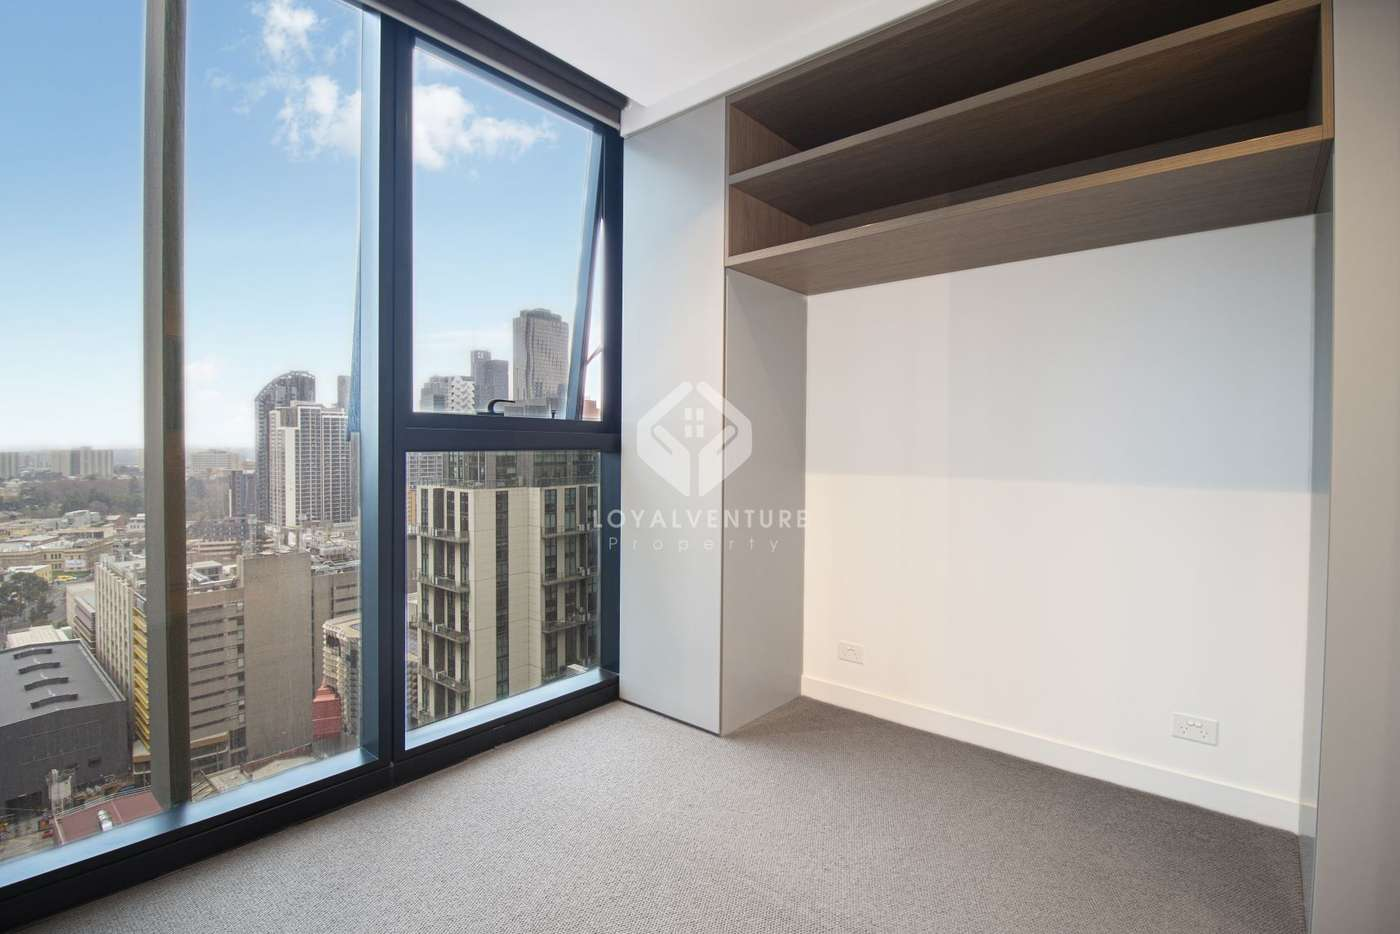 Sixth view of Homely apartment listing, 462 Elizabeth Street, Melbourne VIC 3004